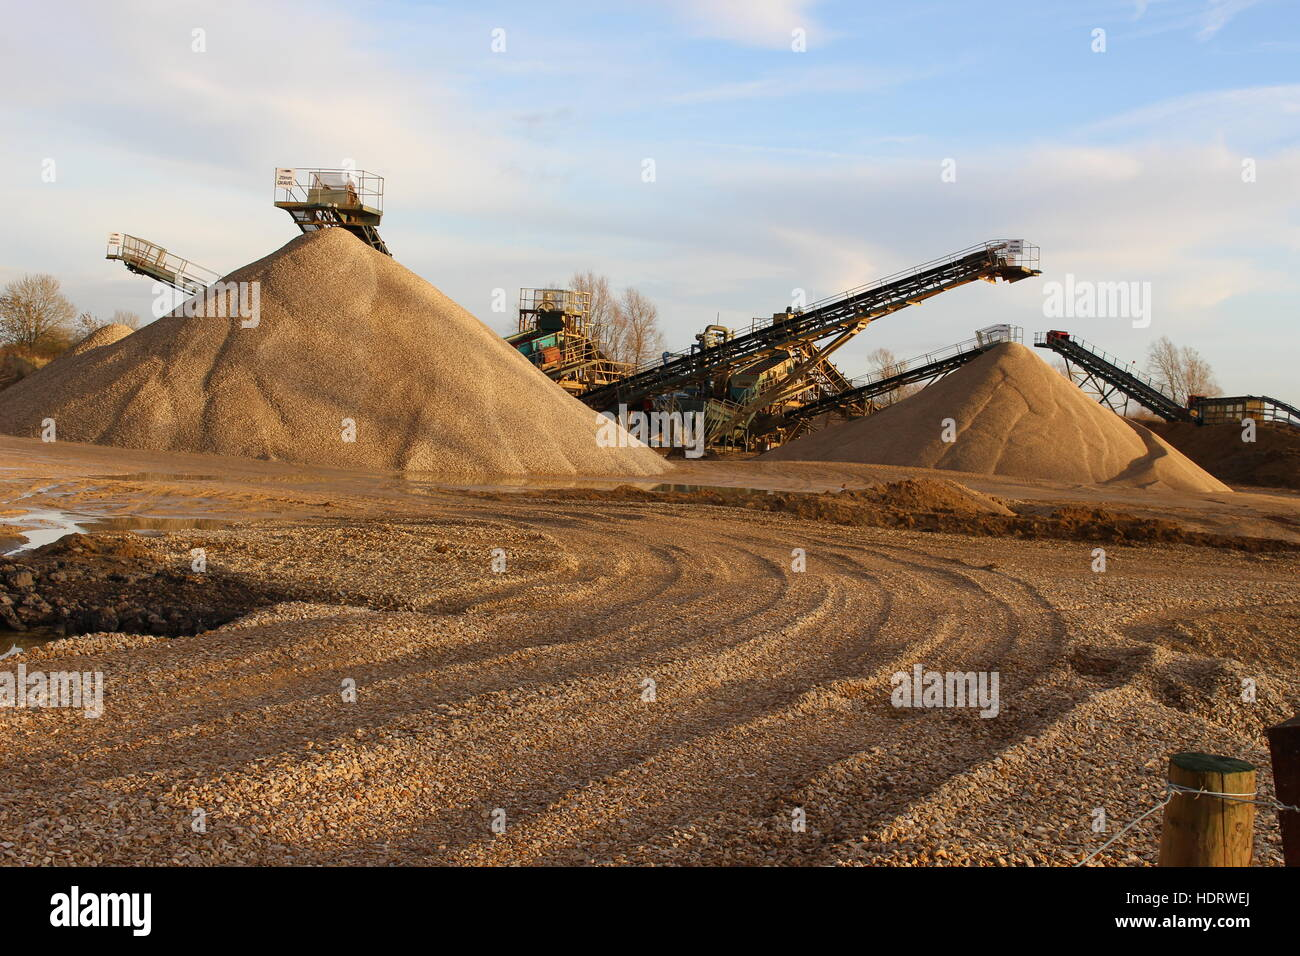 Quarry heaps piles gravel sand bulk rock mineral aggregate machinery machines crusher grinder grinding tyre tracks - Stock Image